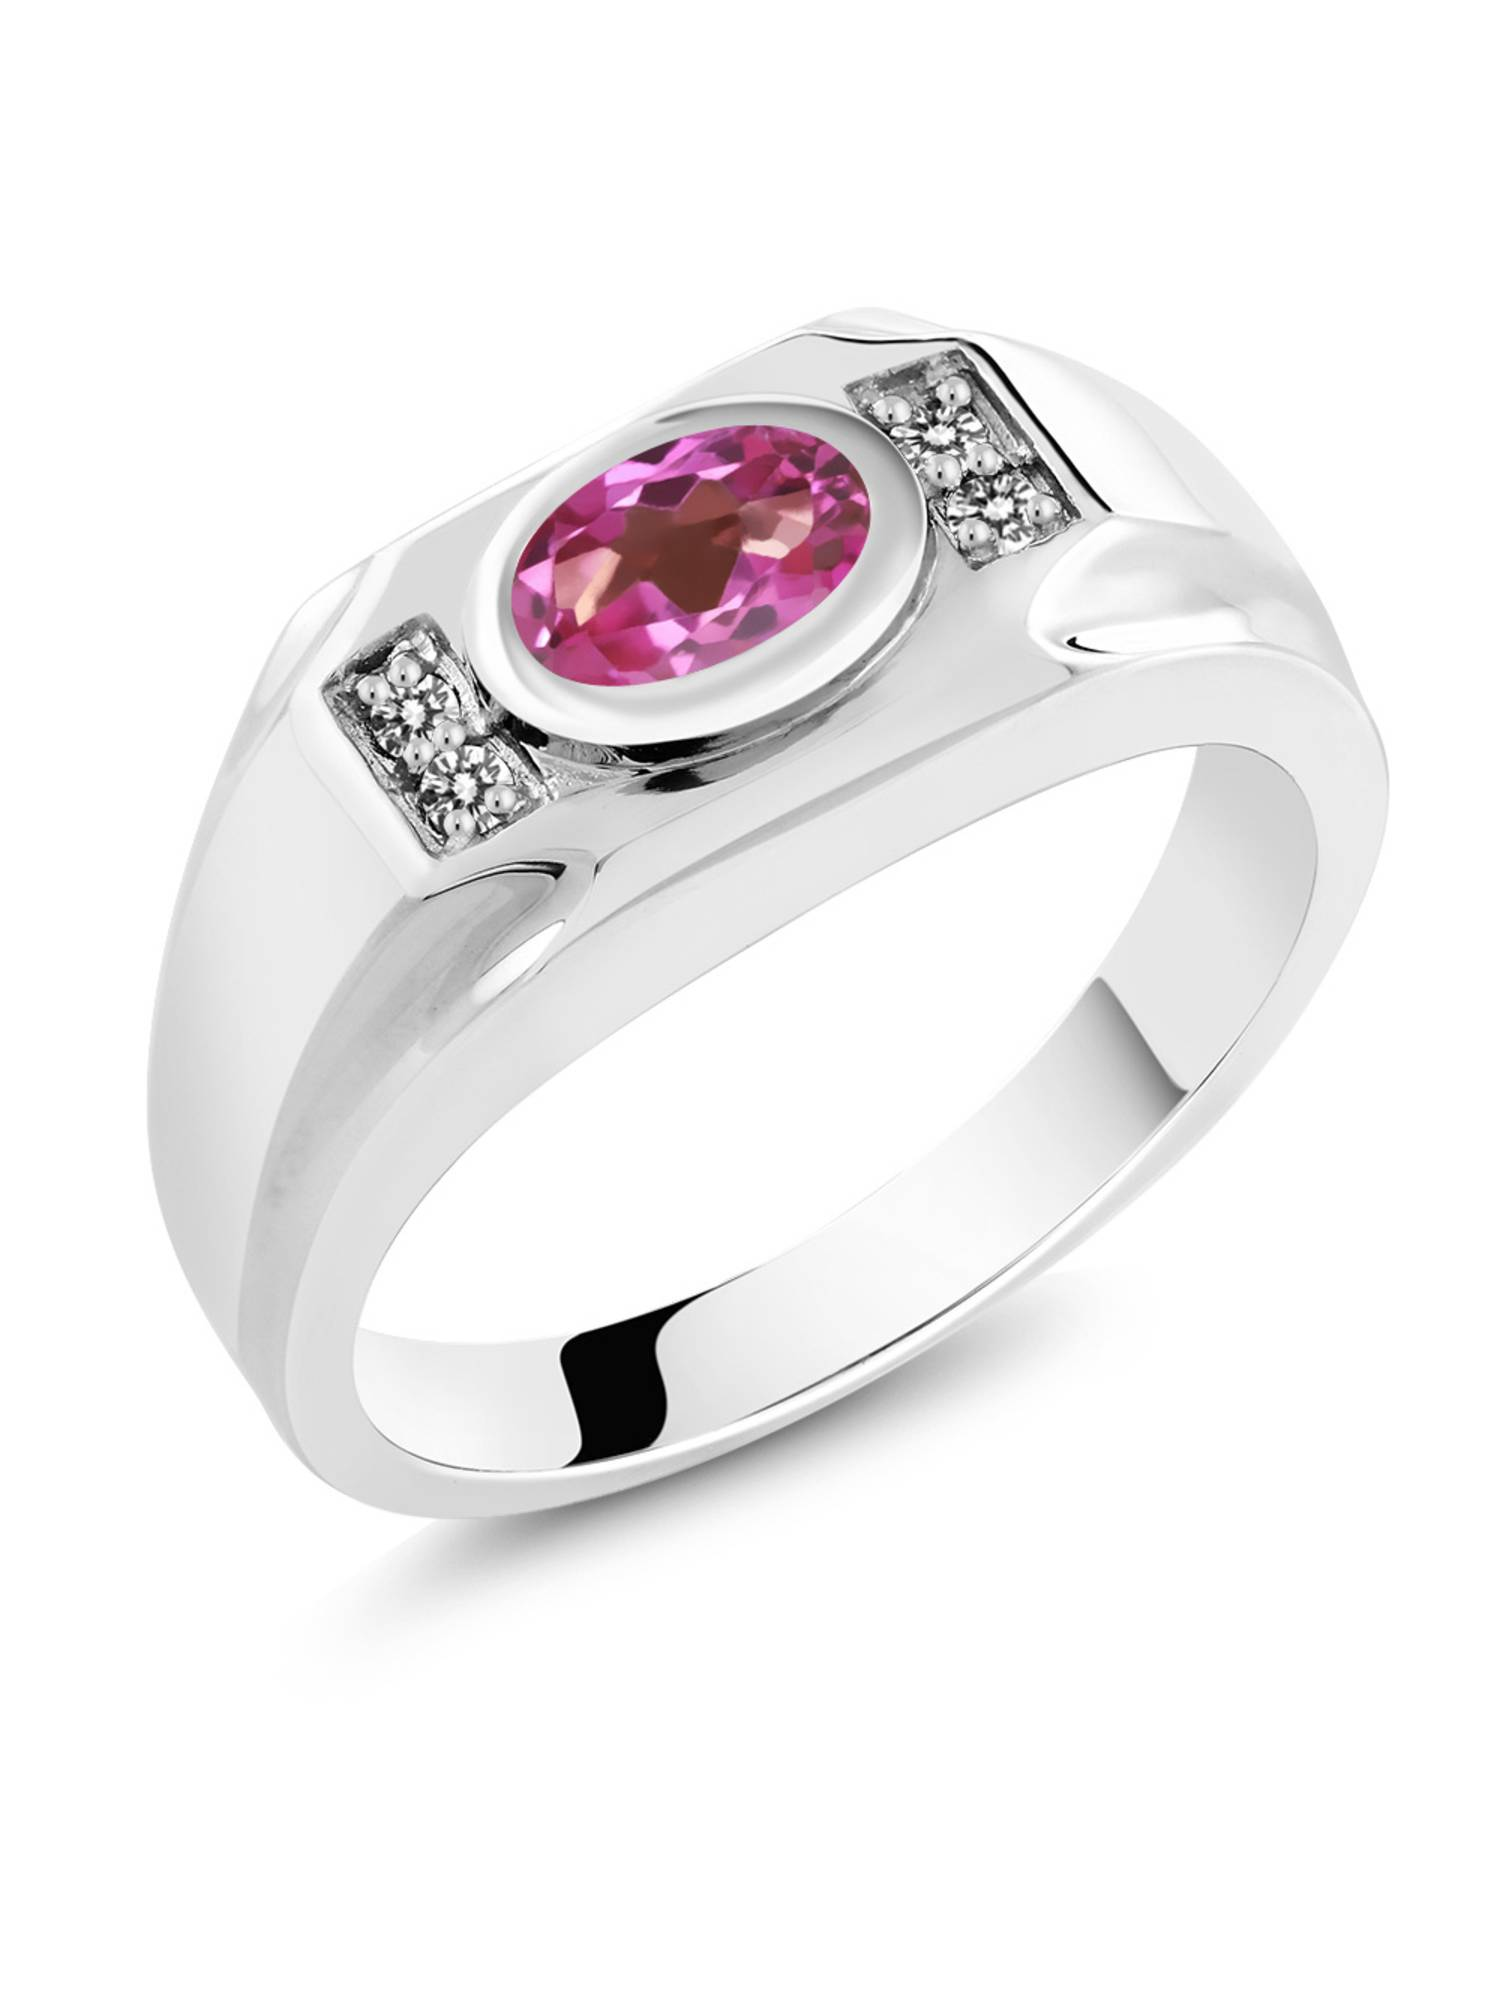 1.63 Ct Oval Pink Mystic Topaz White Diamond 925 Sterling Silver Men's Ring by